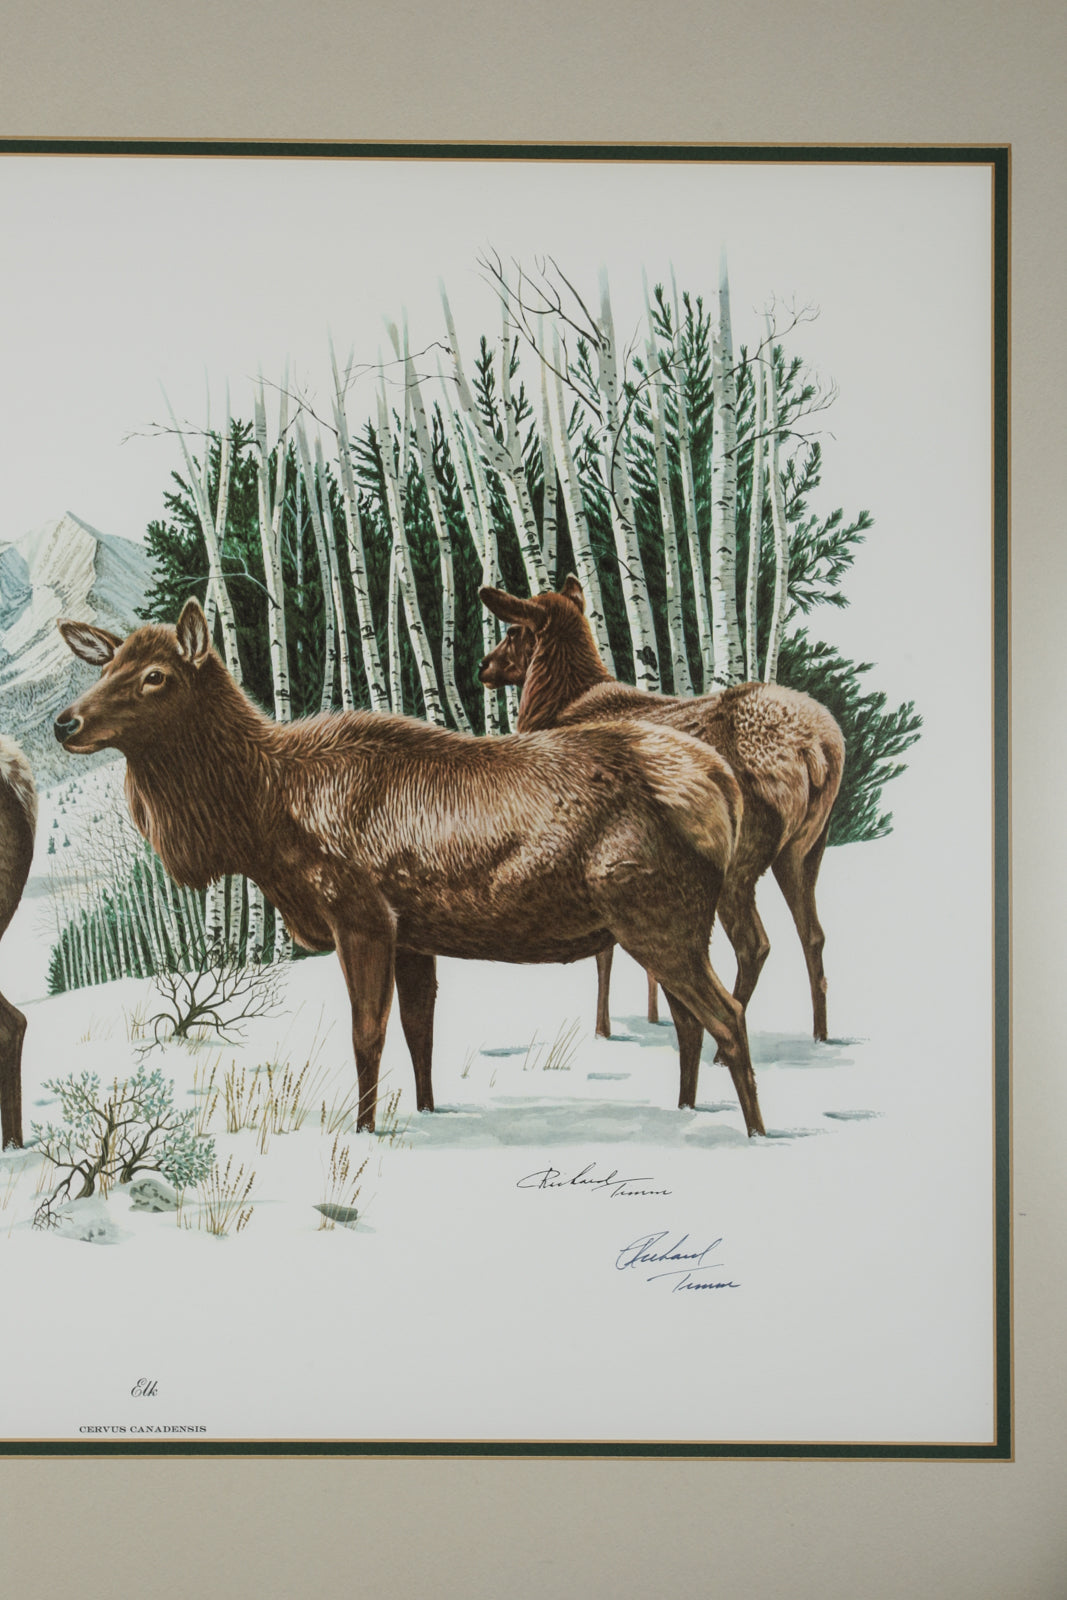 Richard Timm lithograph